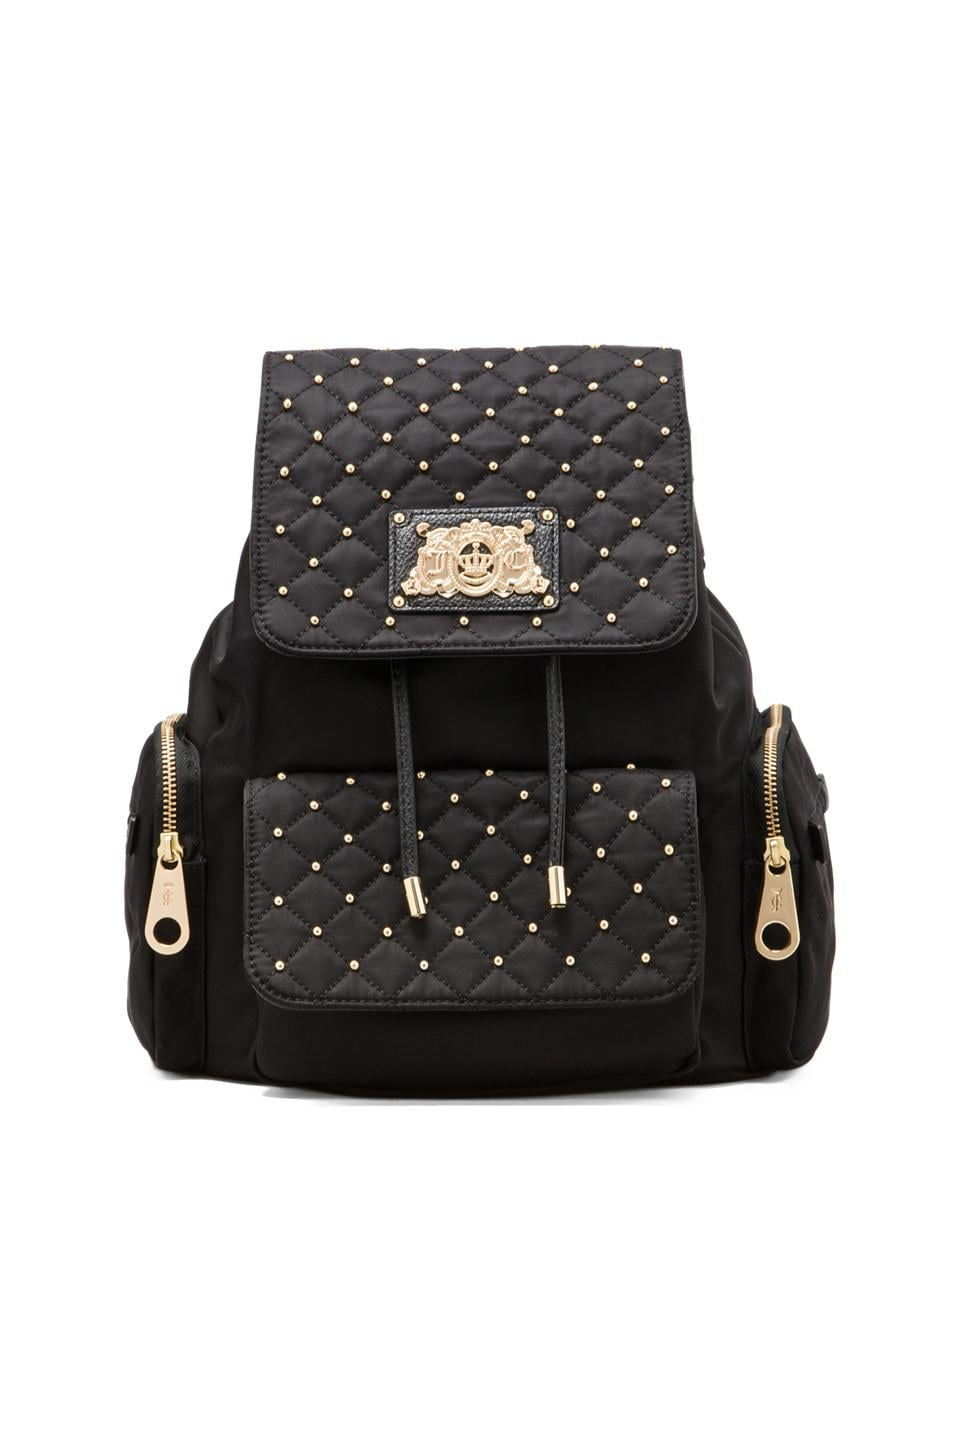 Juicy Couture Venice Quilted Nylon Backpack in Black